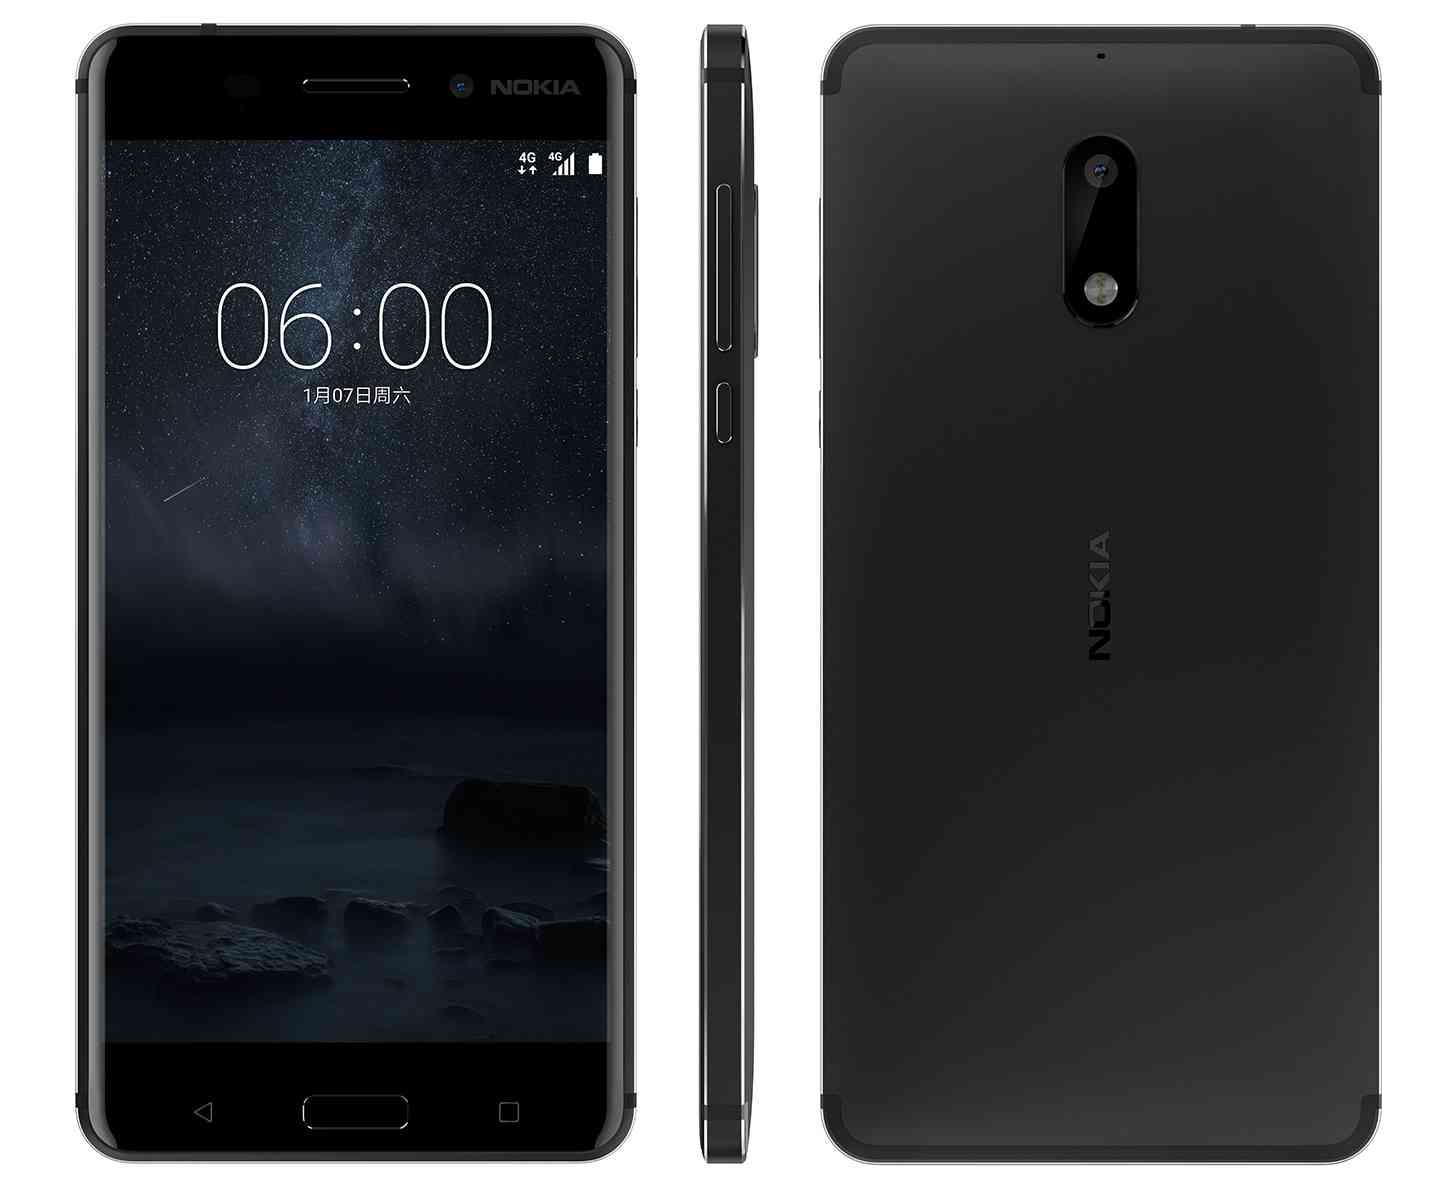 nokia6 - Nokia is Back in the smartphone game with the launch of the Nokia 6